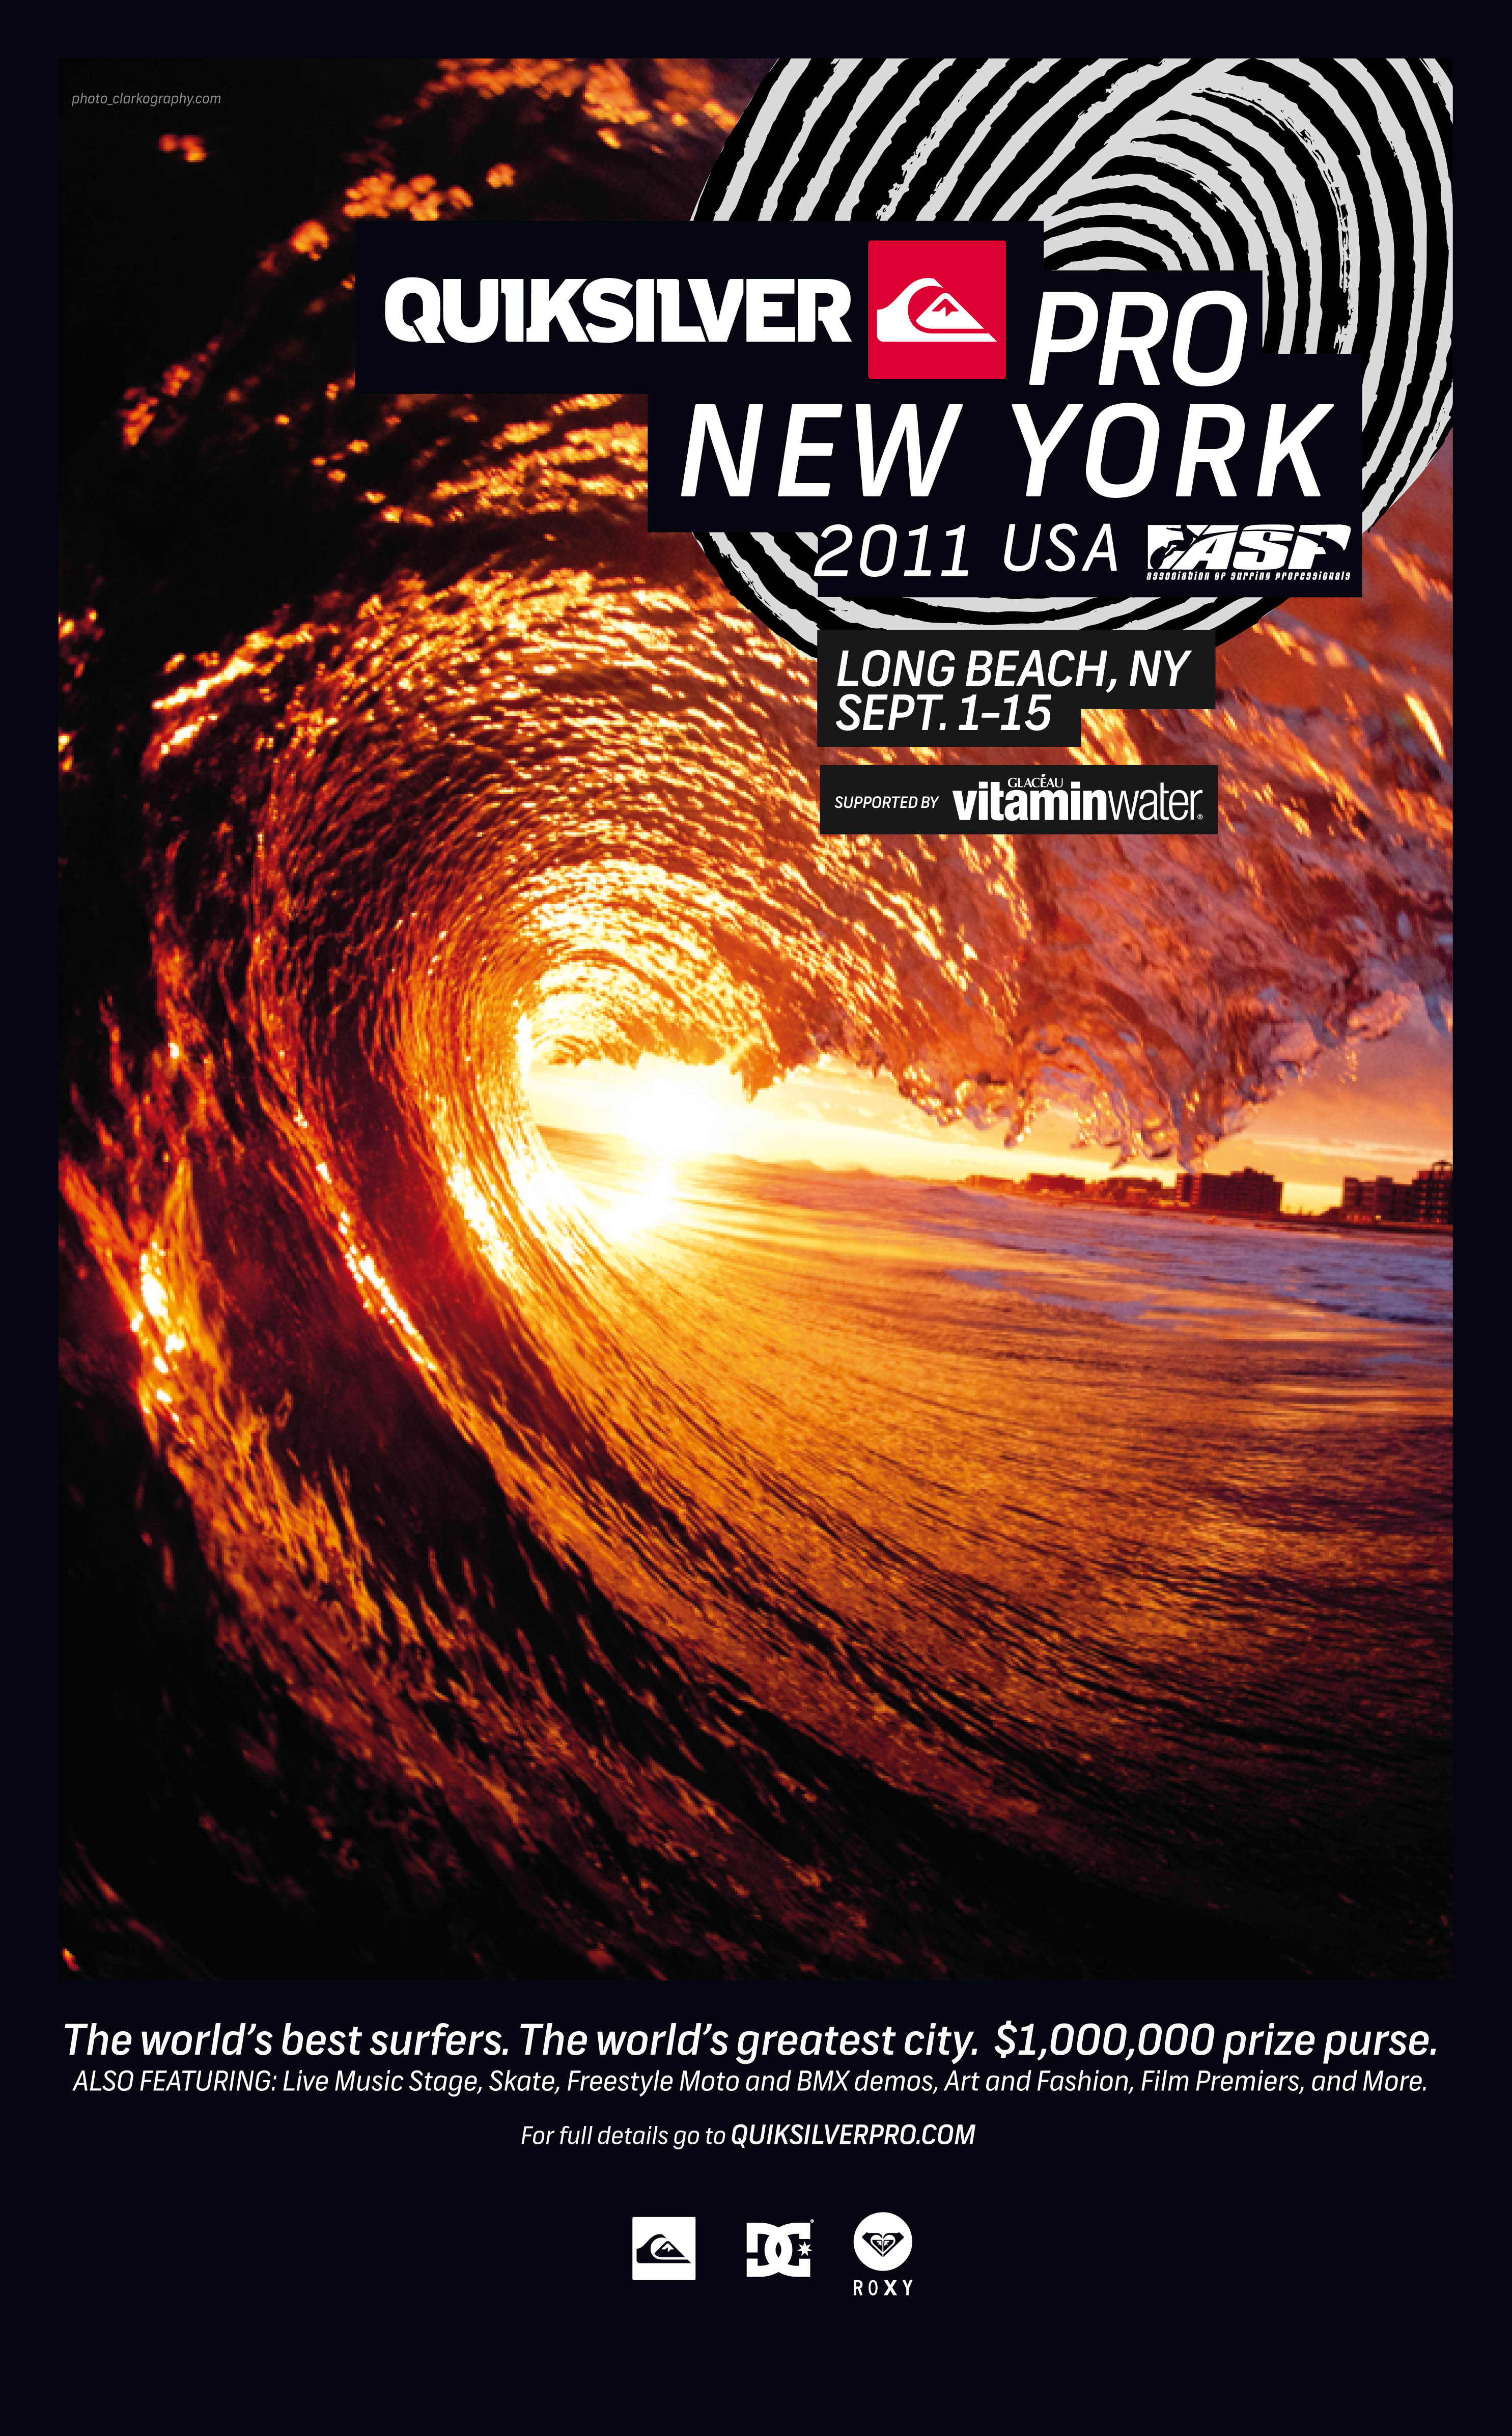 Quiksilver Pro NY poster QUIKSILVER PRO NEW YORK